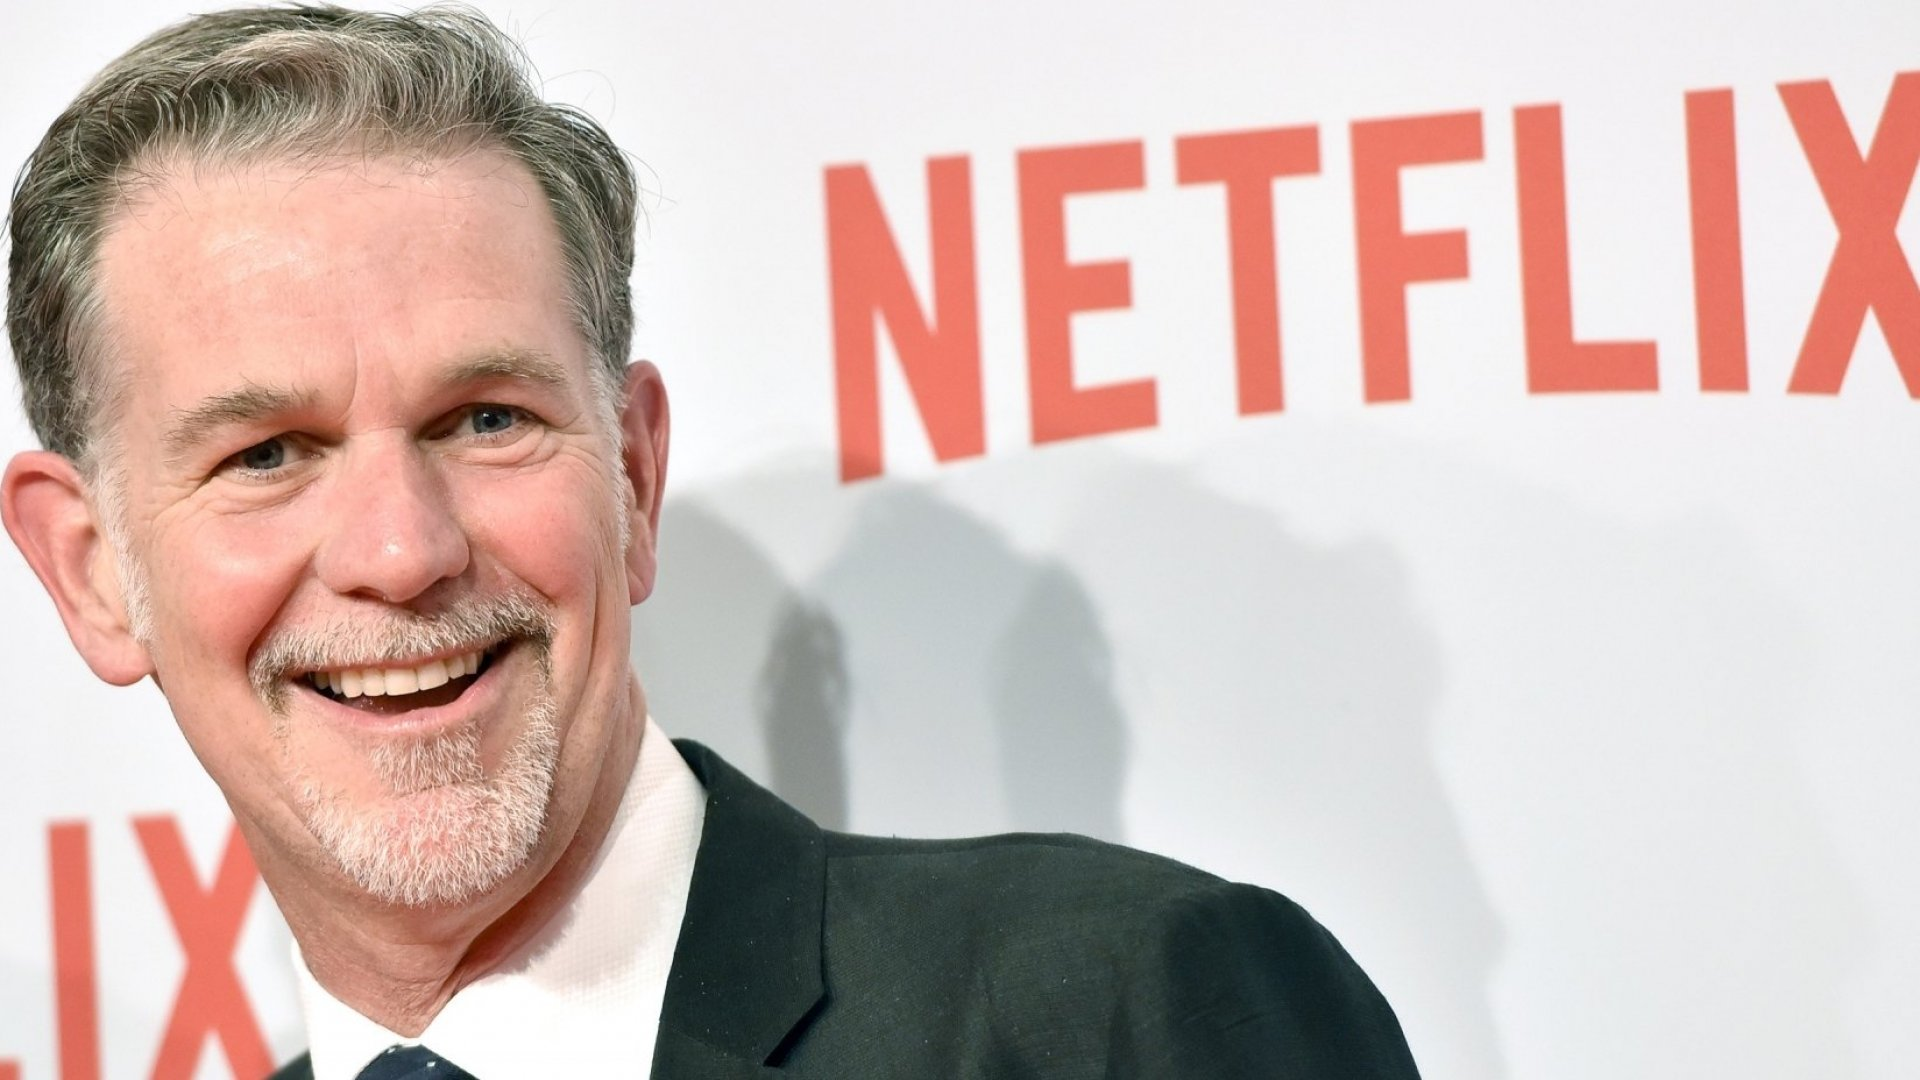 Netflix co-founder Reed Hastings